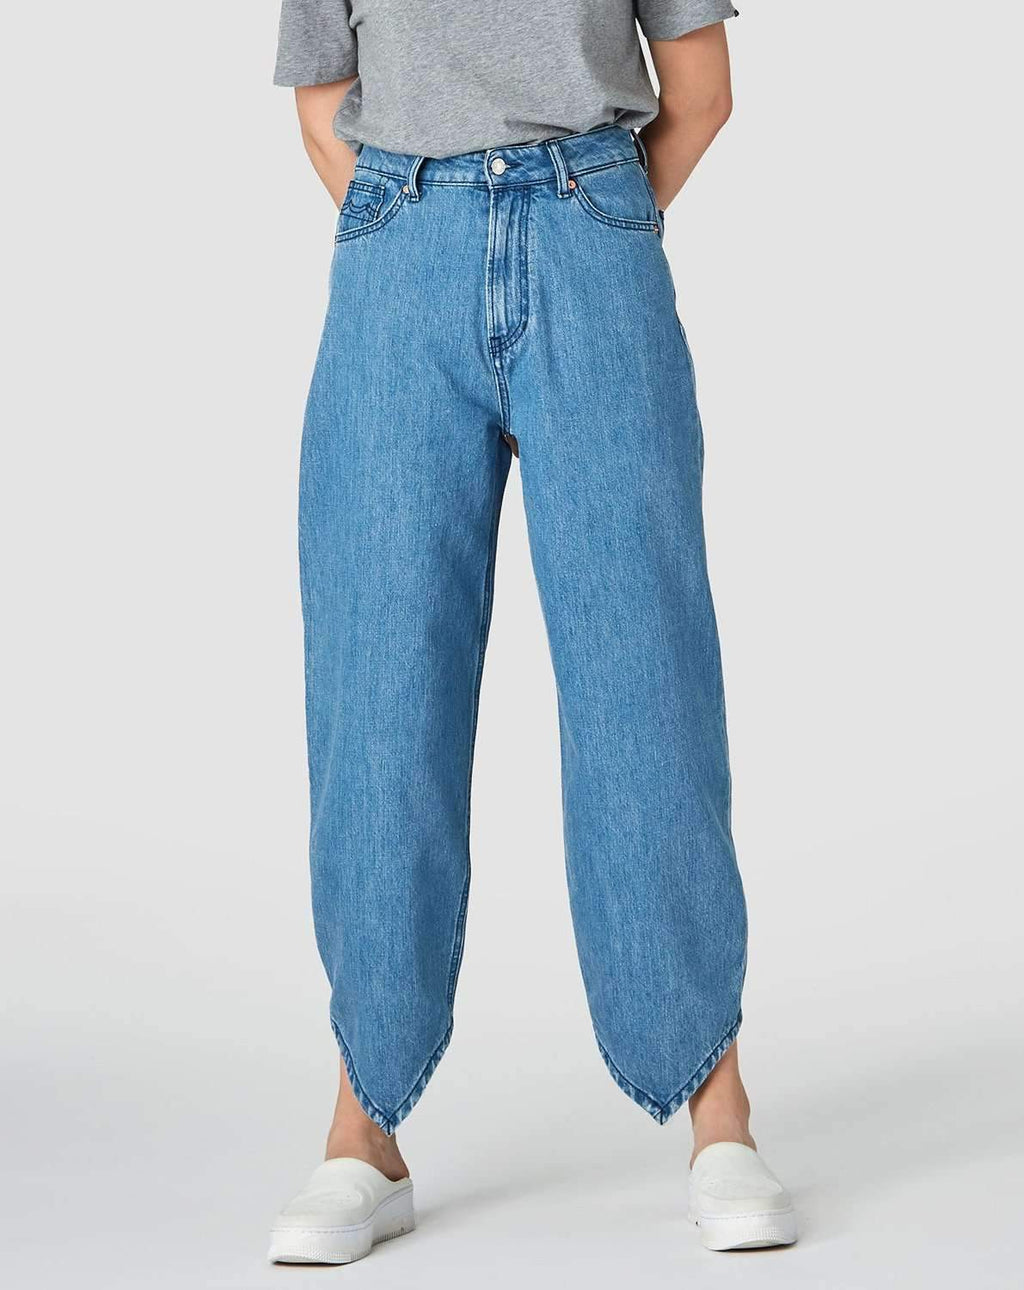 Leila Bottom Level jeans